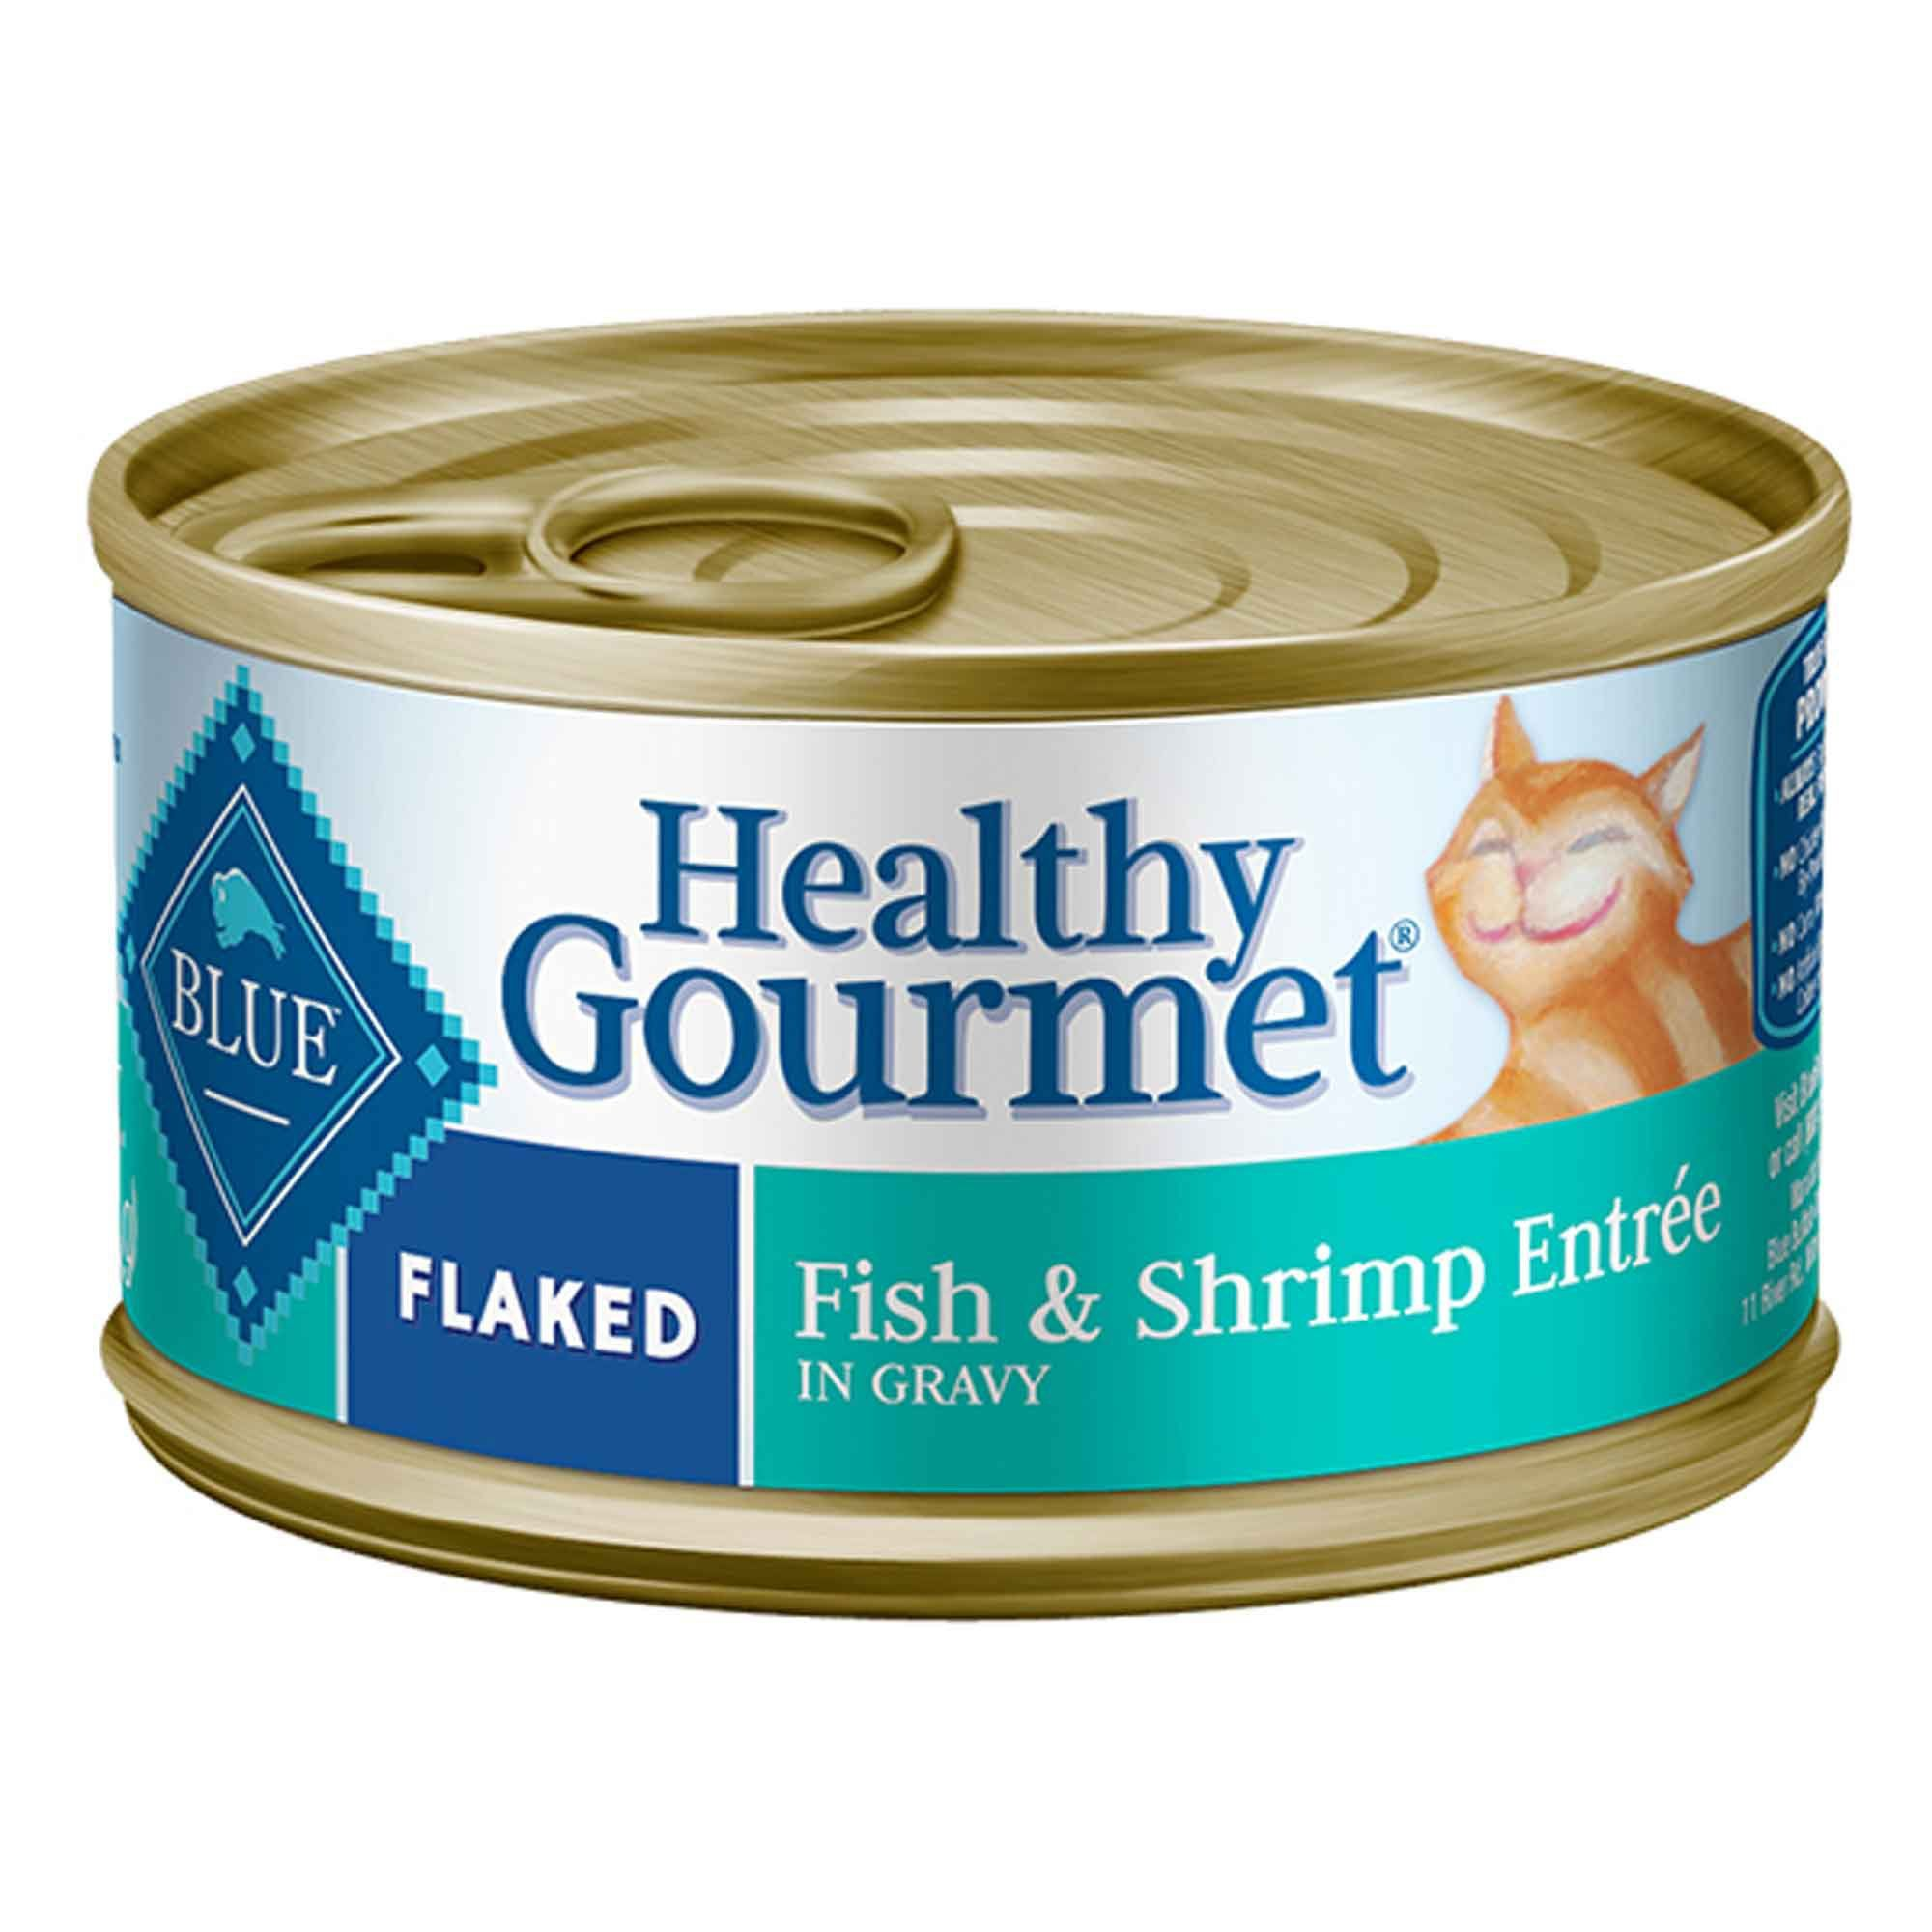 Blue Buffalo Blue Healthy Gourmet Flaked Fish Shrimp Entree Wet Cat Food 3 Oz Case Of 24 24 X 3 Oz In 2020 Healthy Gourmet Canned Cat Food Gourmet Chicken